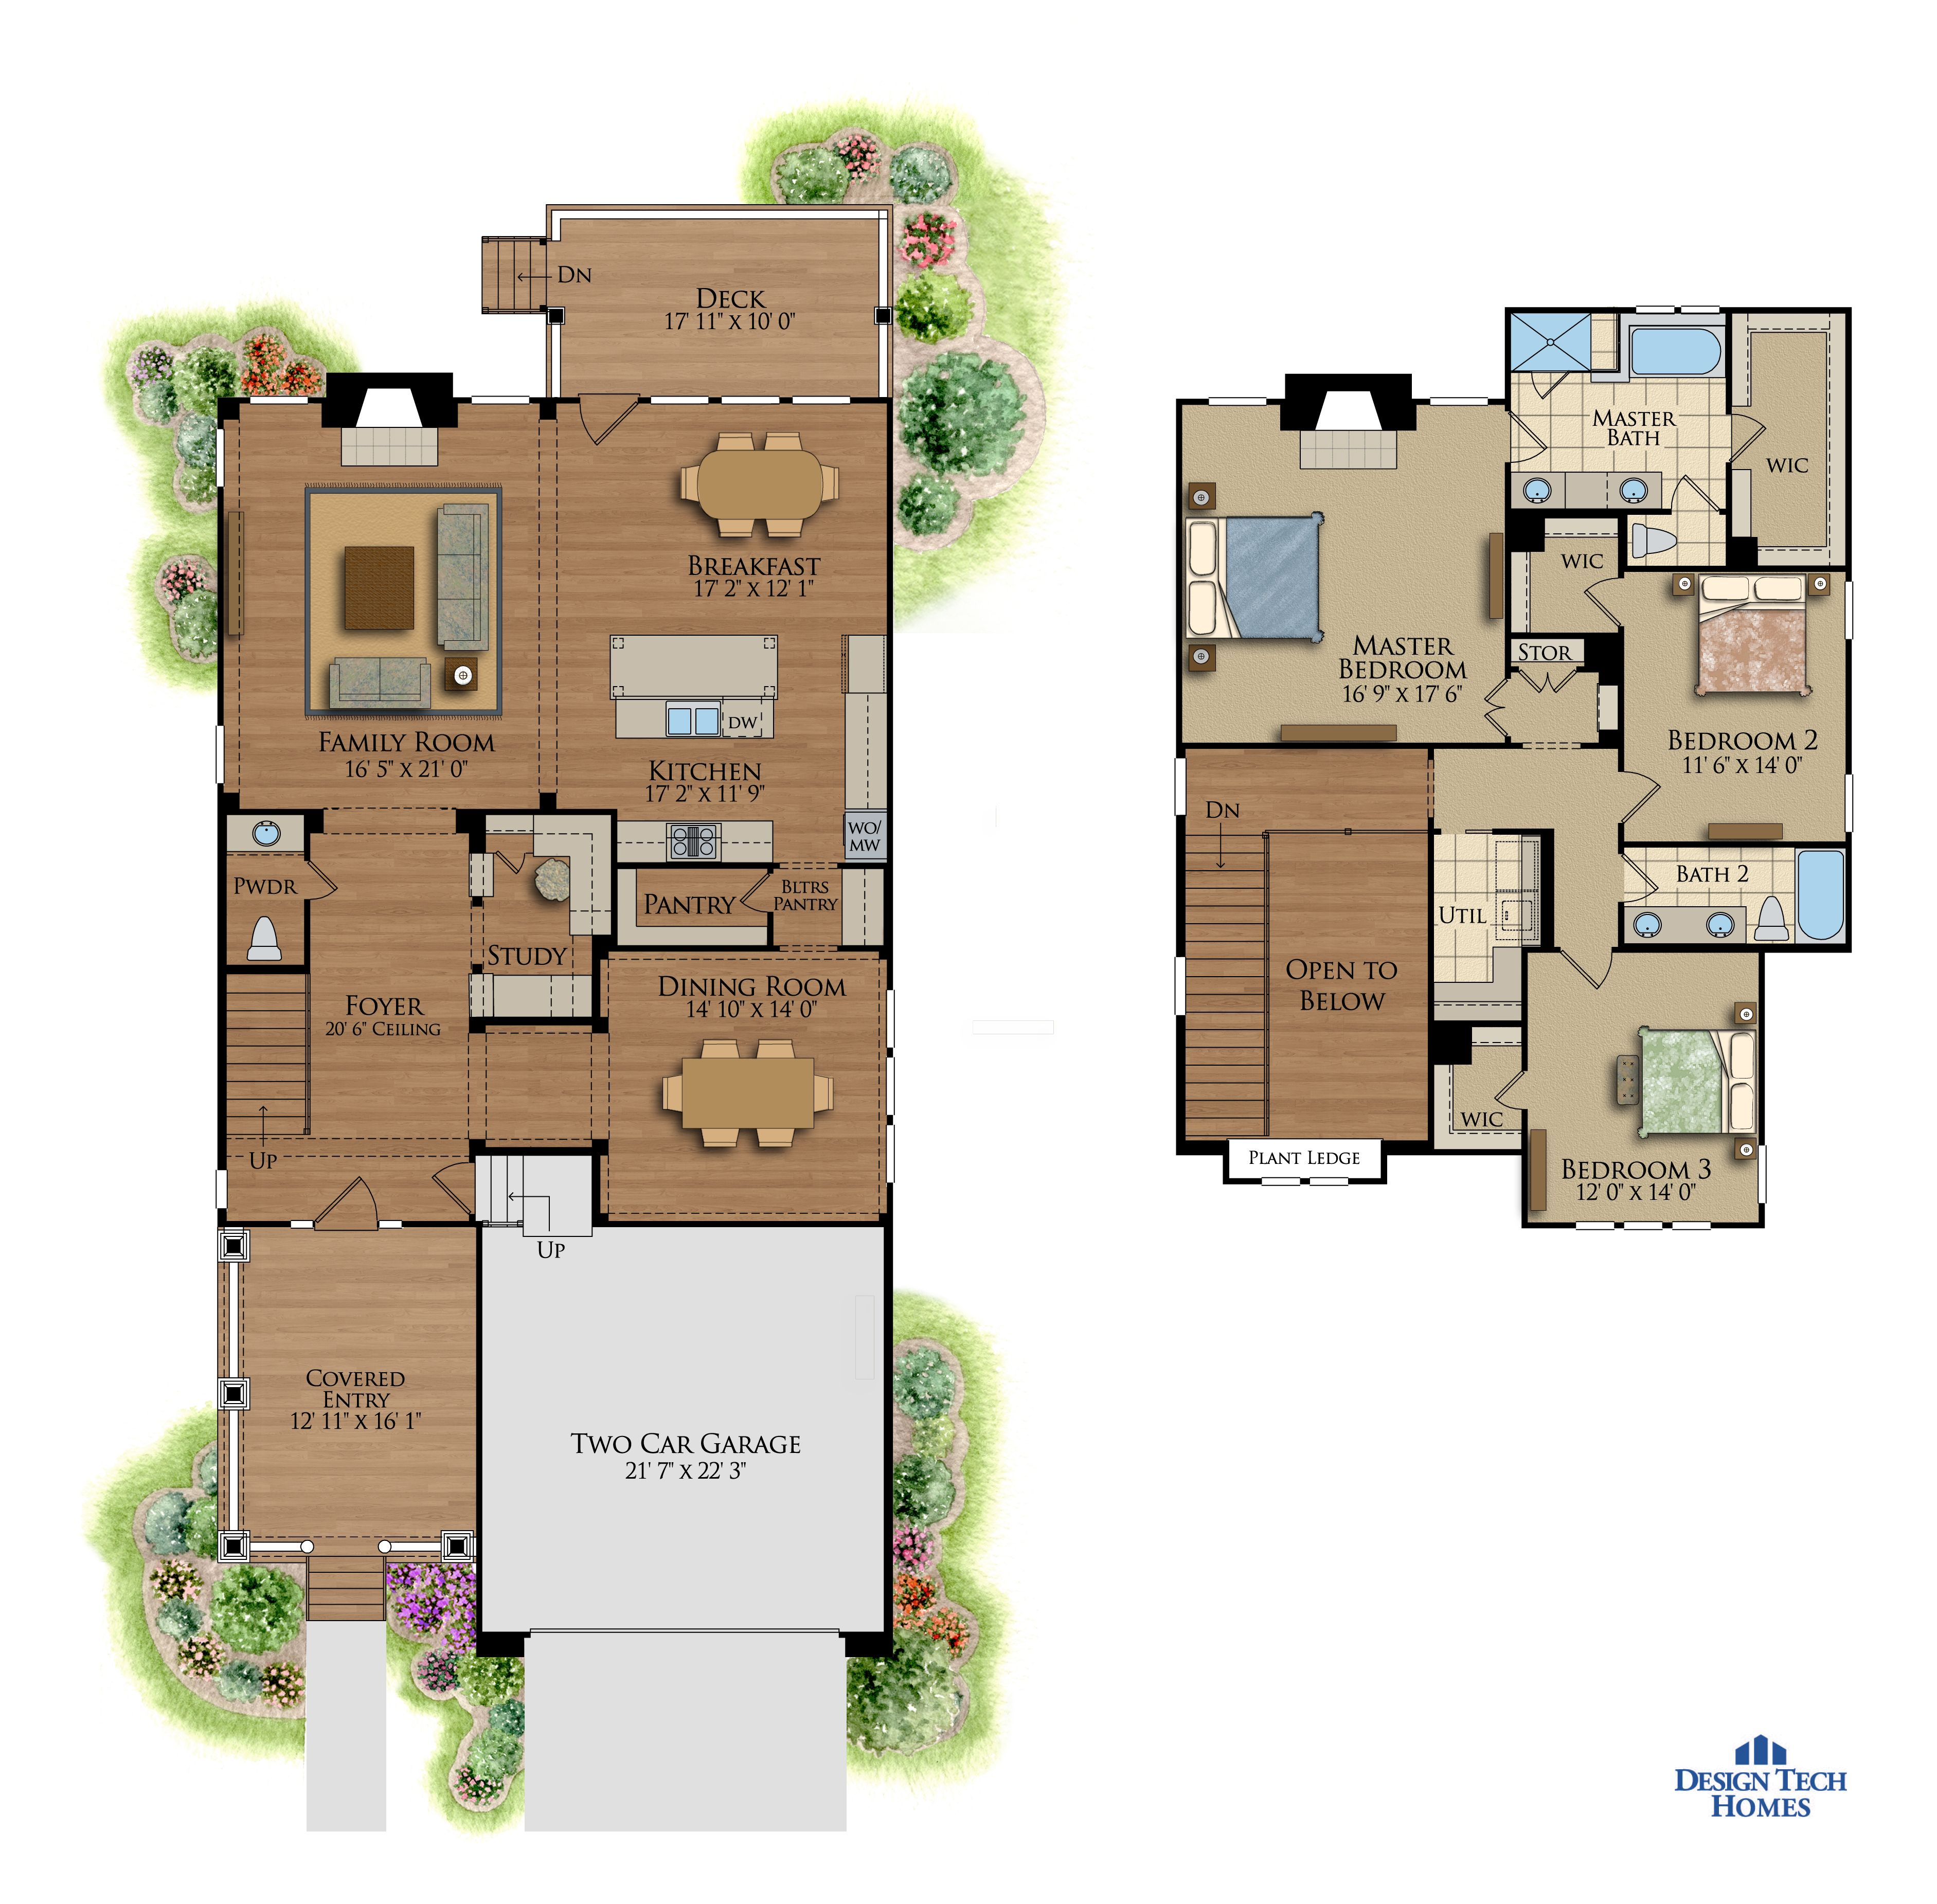 2,736 Sq Ft House Plan - 3 Bed 2.5 Bath, 2 Story - The Centennial ...